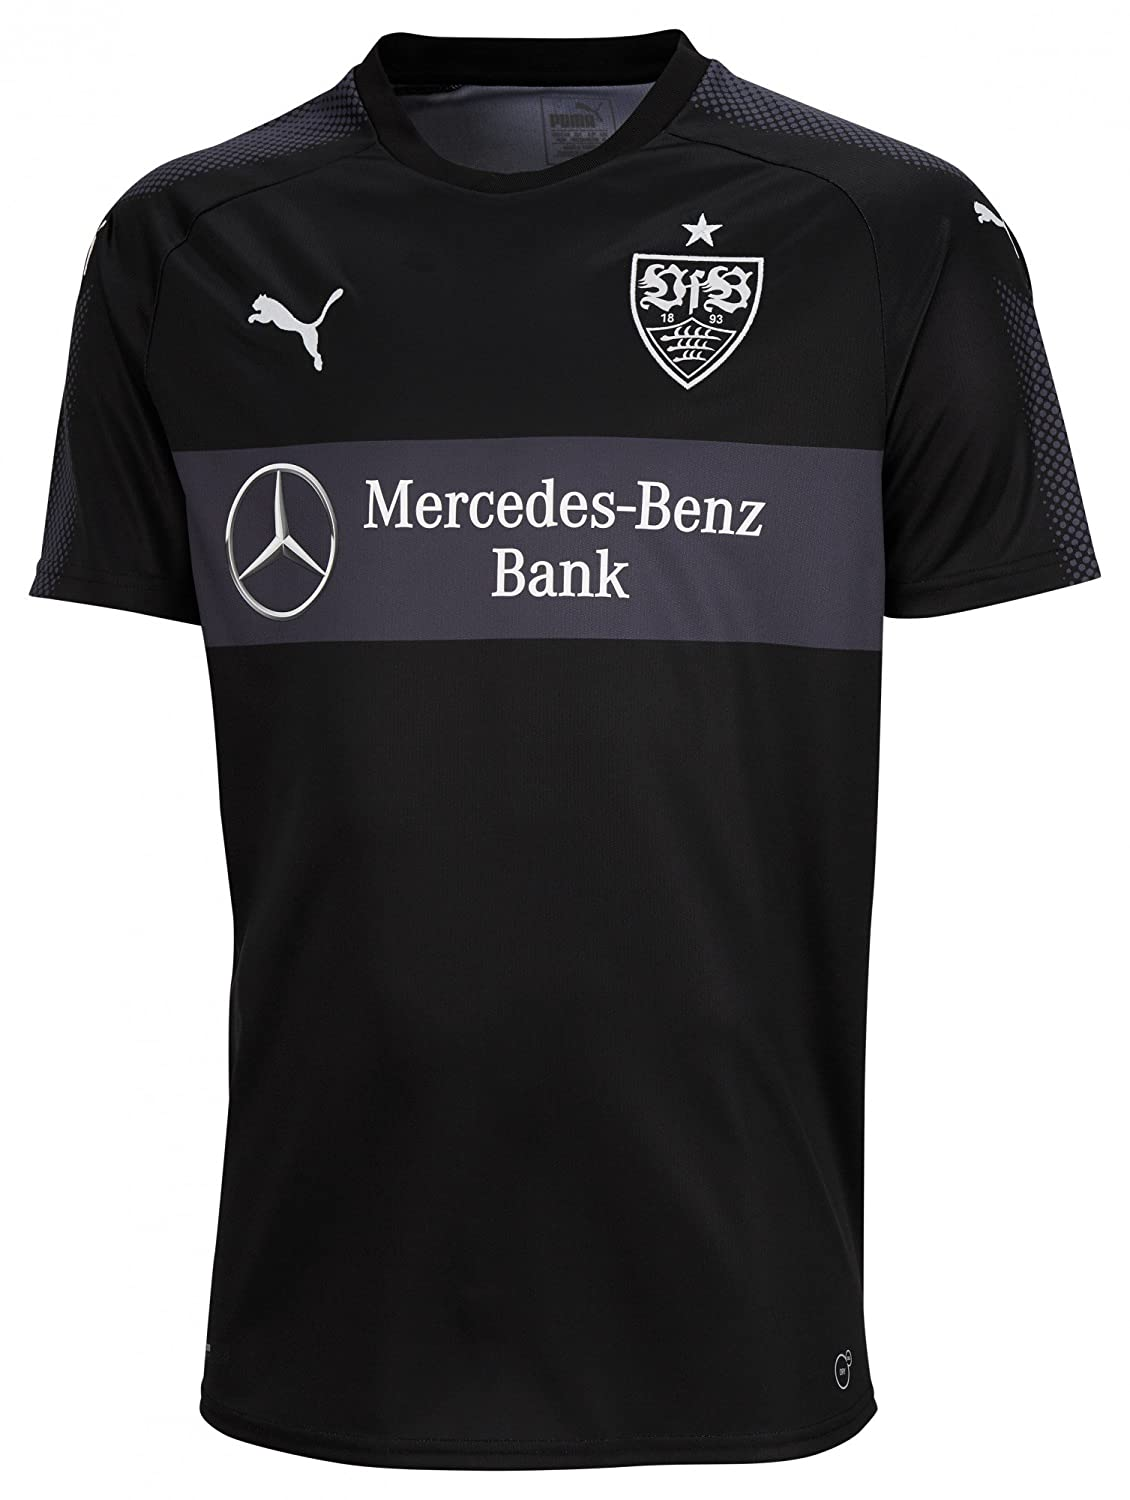 Amazon.com : VfB Stuttgart 3rd Jersey 2017 / 2018 - S : Sports & Outdoors